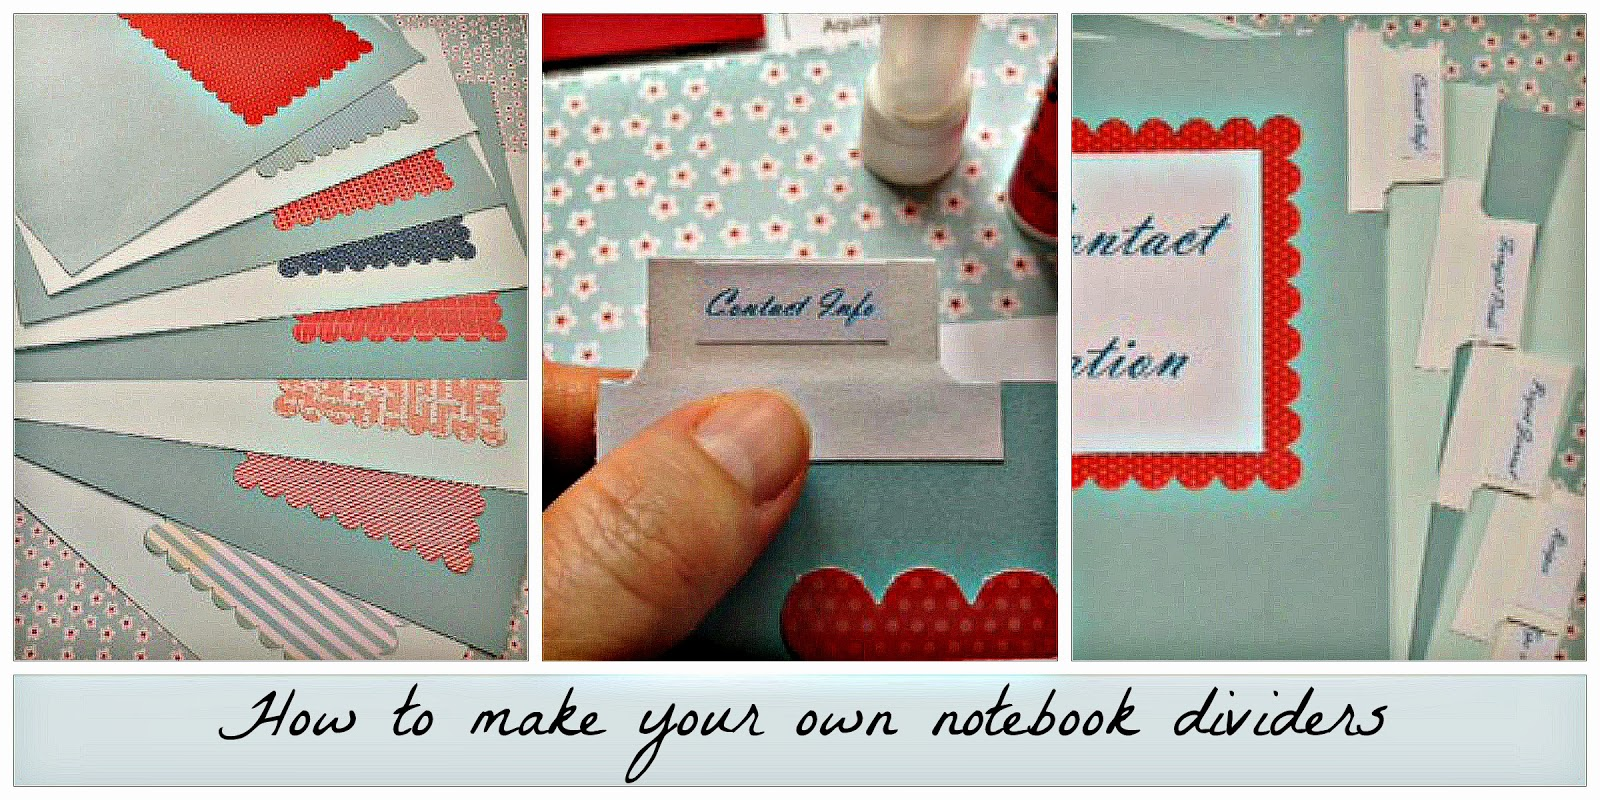 How to make your own DIVIDERS for that scrapbook or binder project you're doing.